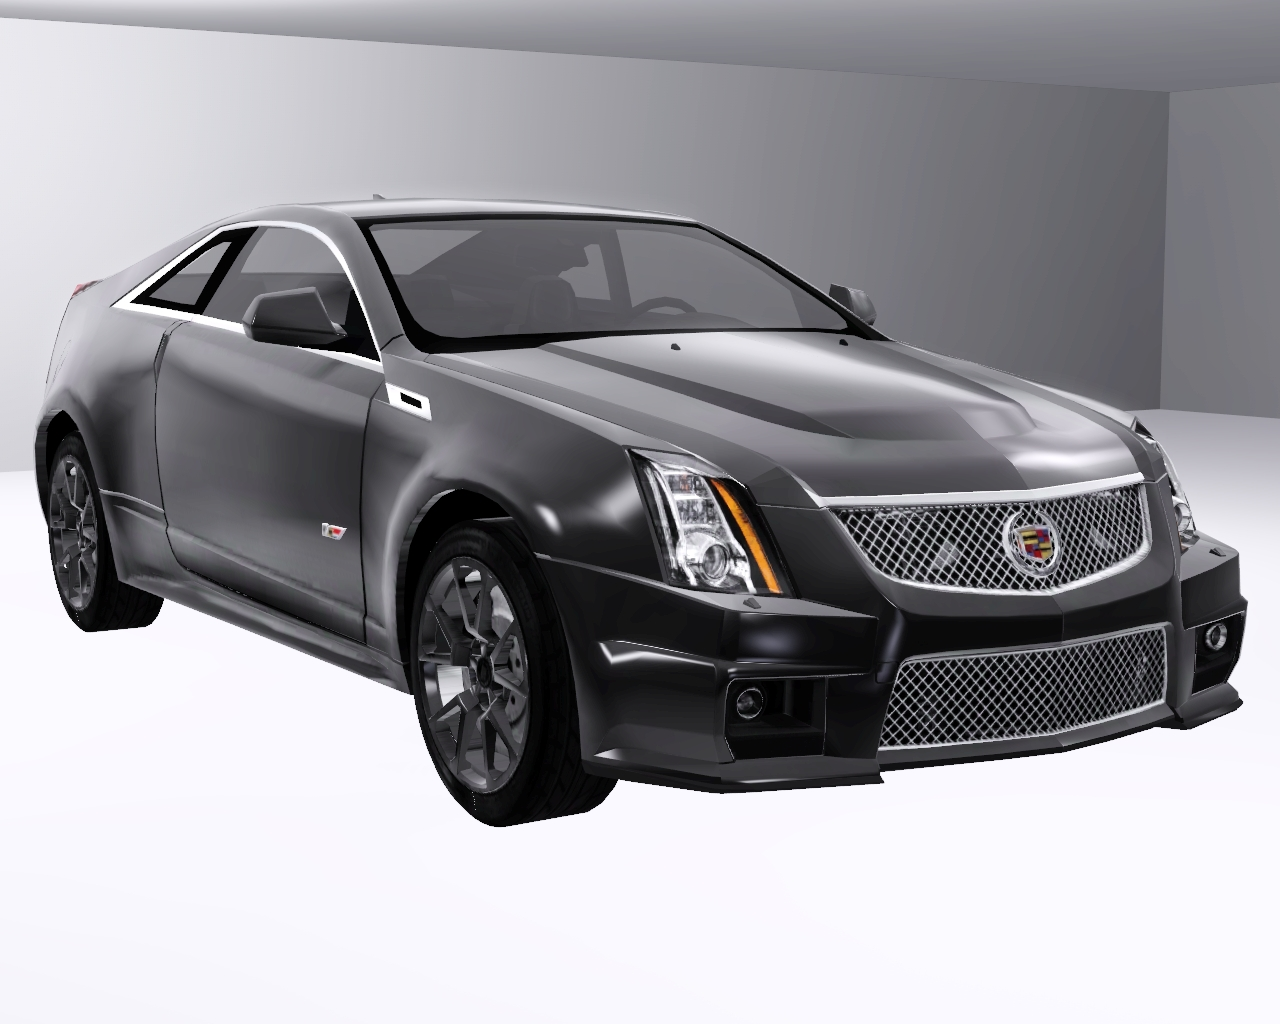 2011 Cadillac CTS-V Coupe by Fresh-Prince